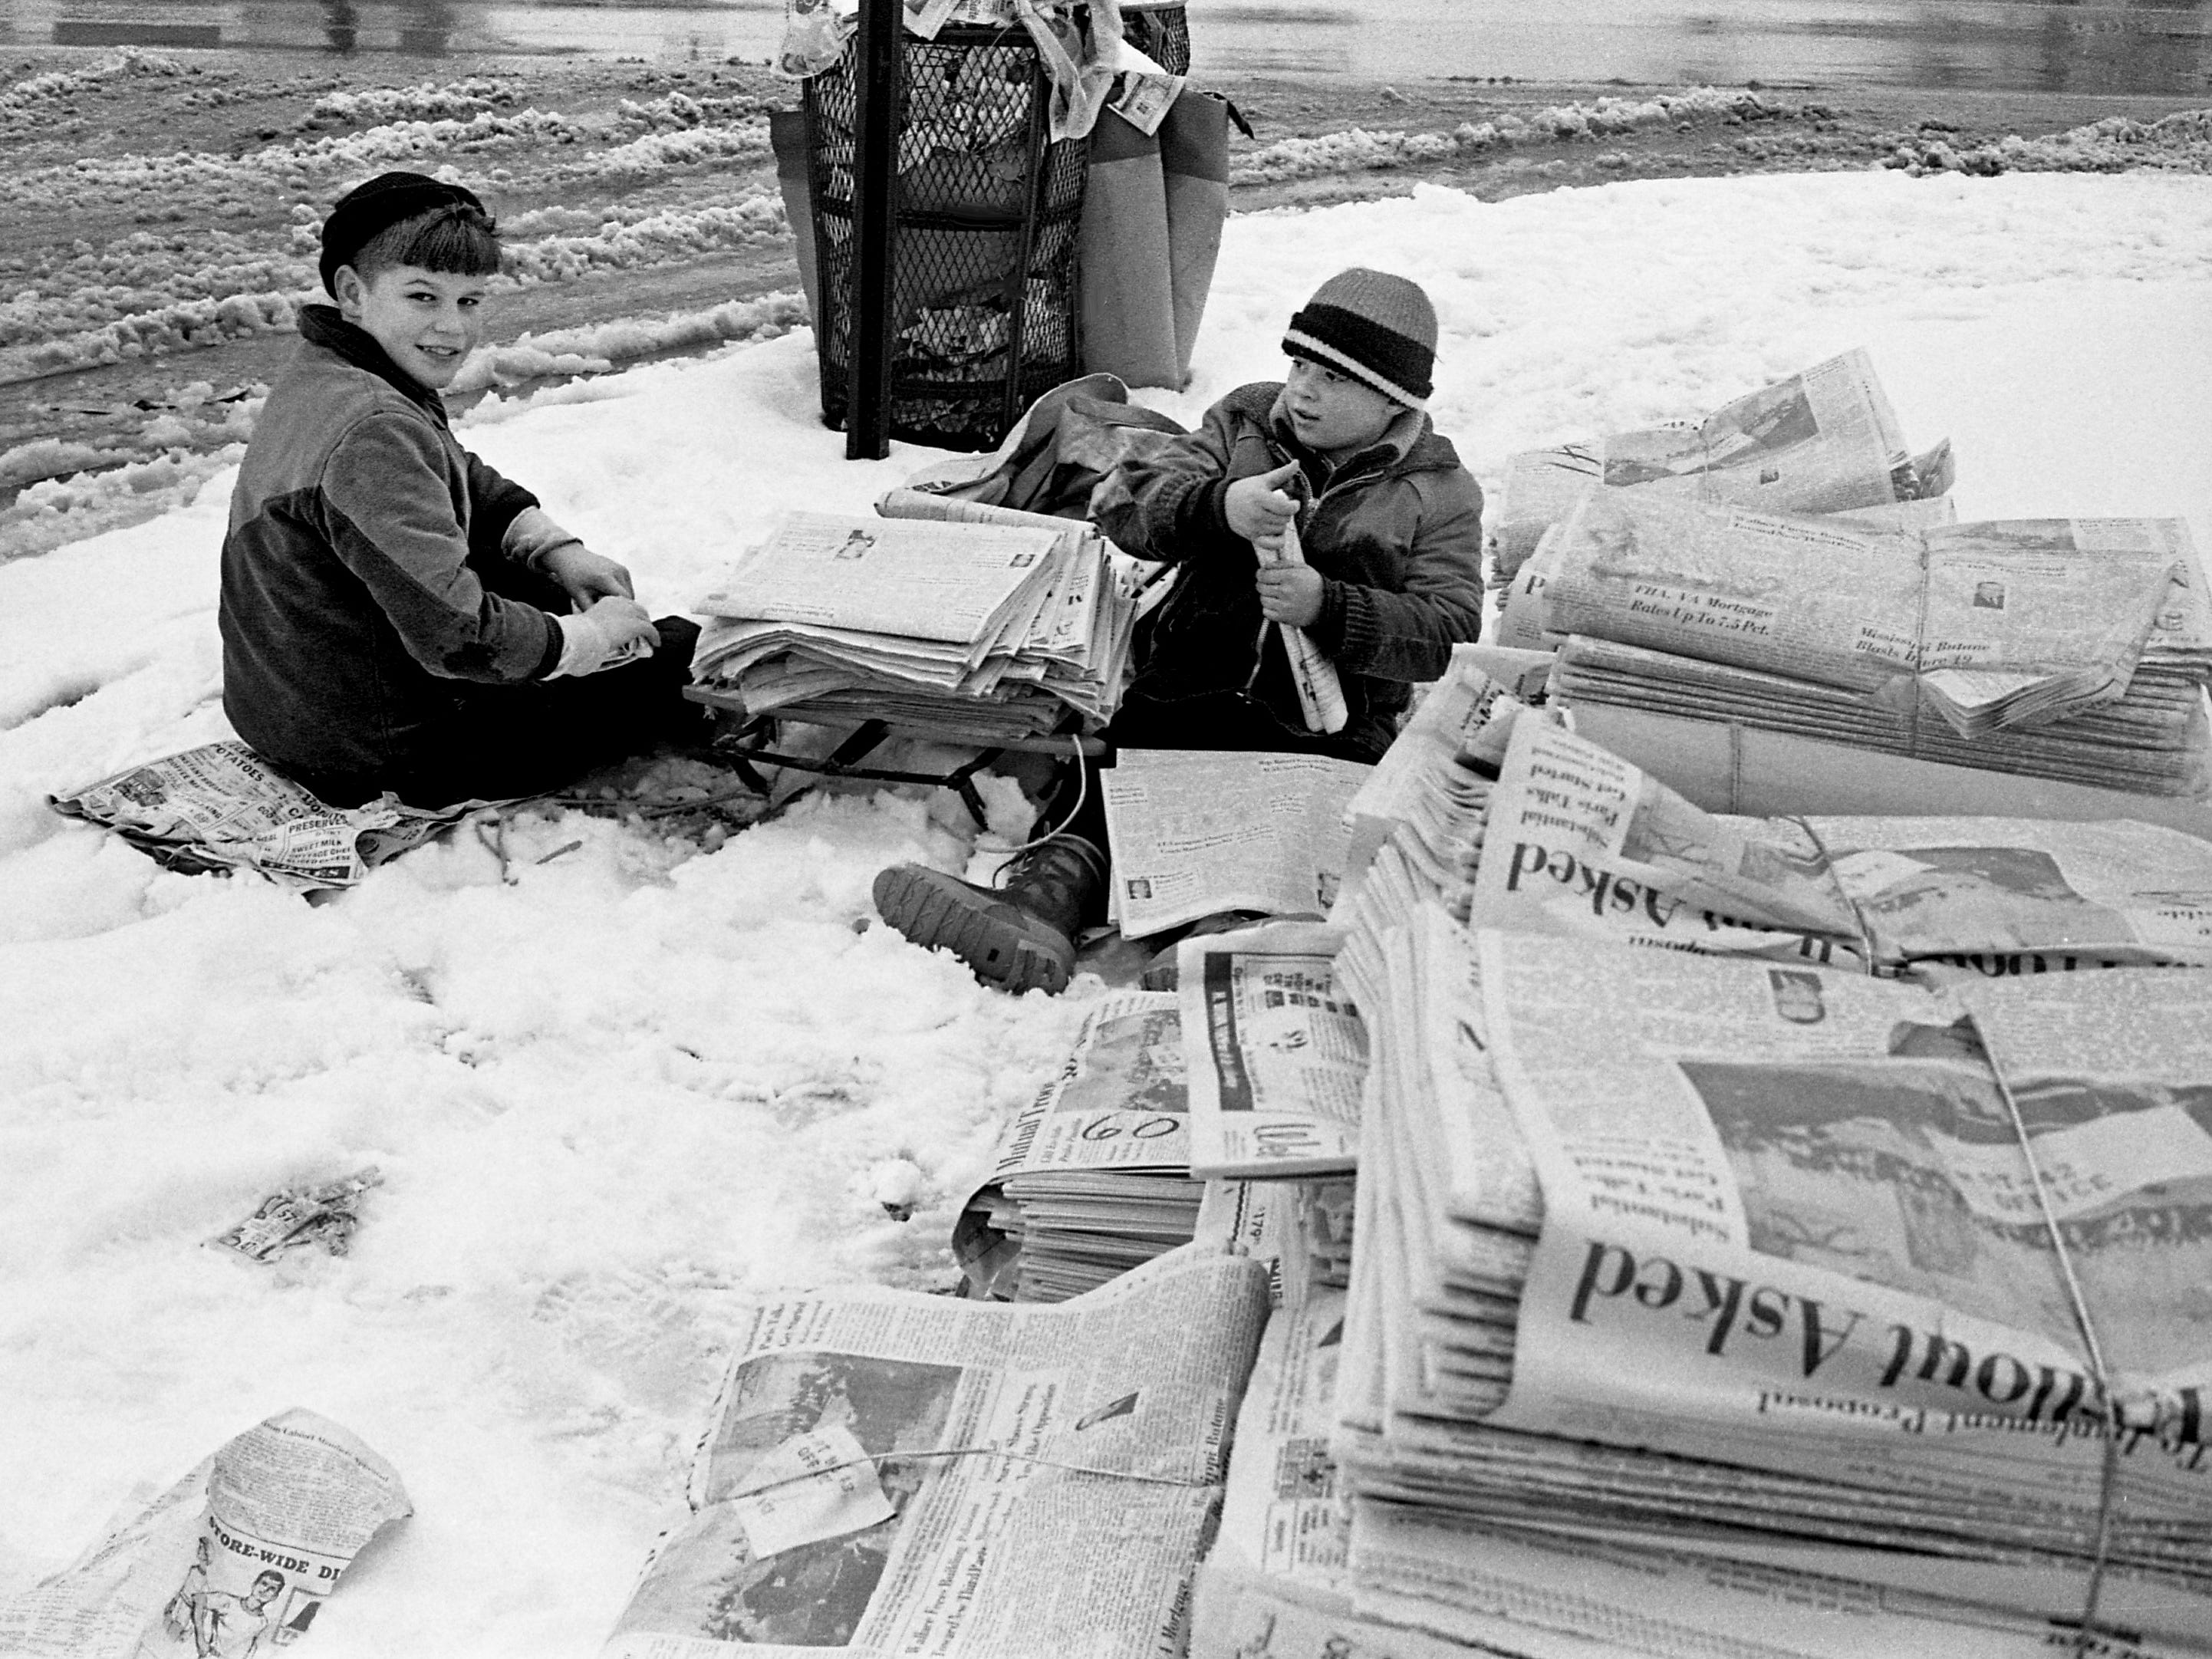 Despite a cold and snowy day to be delivering newspapers, David King, left, and Steve Elmore prepare for their routes by using a sled Jan. 27, 1969.